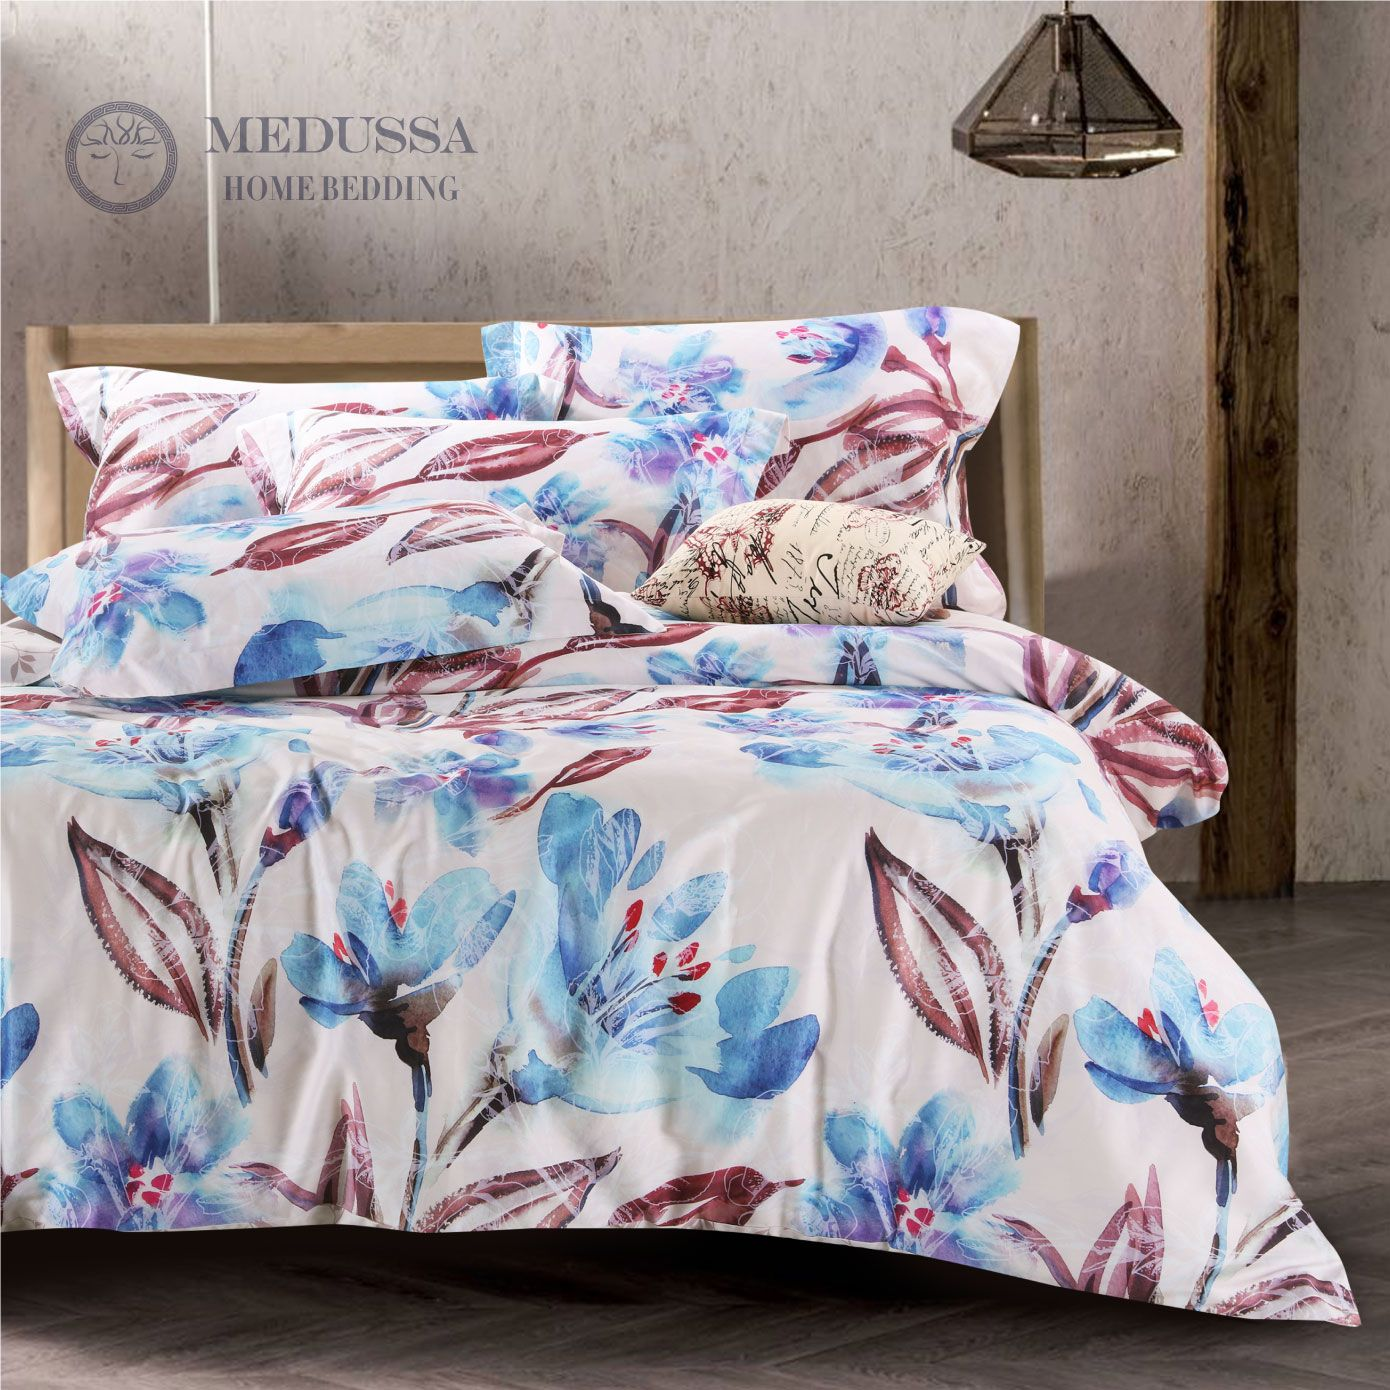 The Fragrance (With images) Duvet cover pattern, Bed